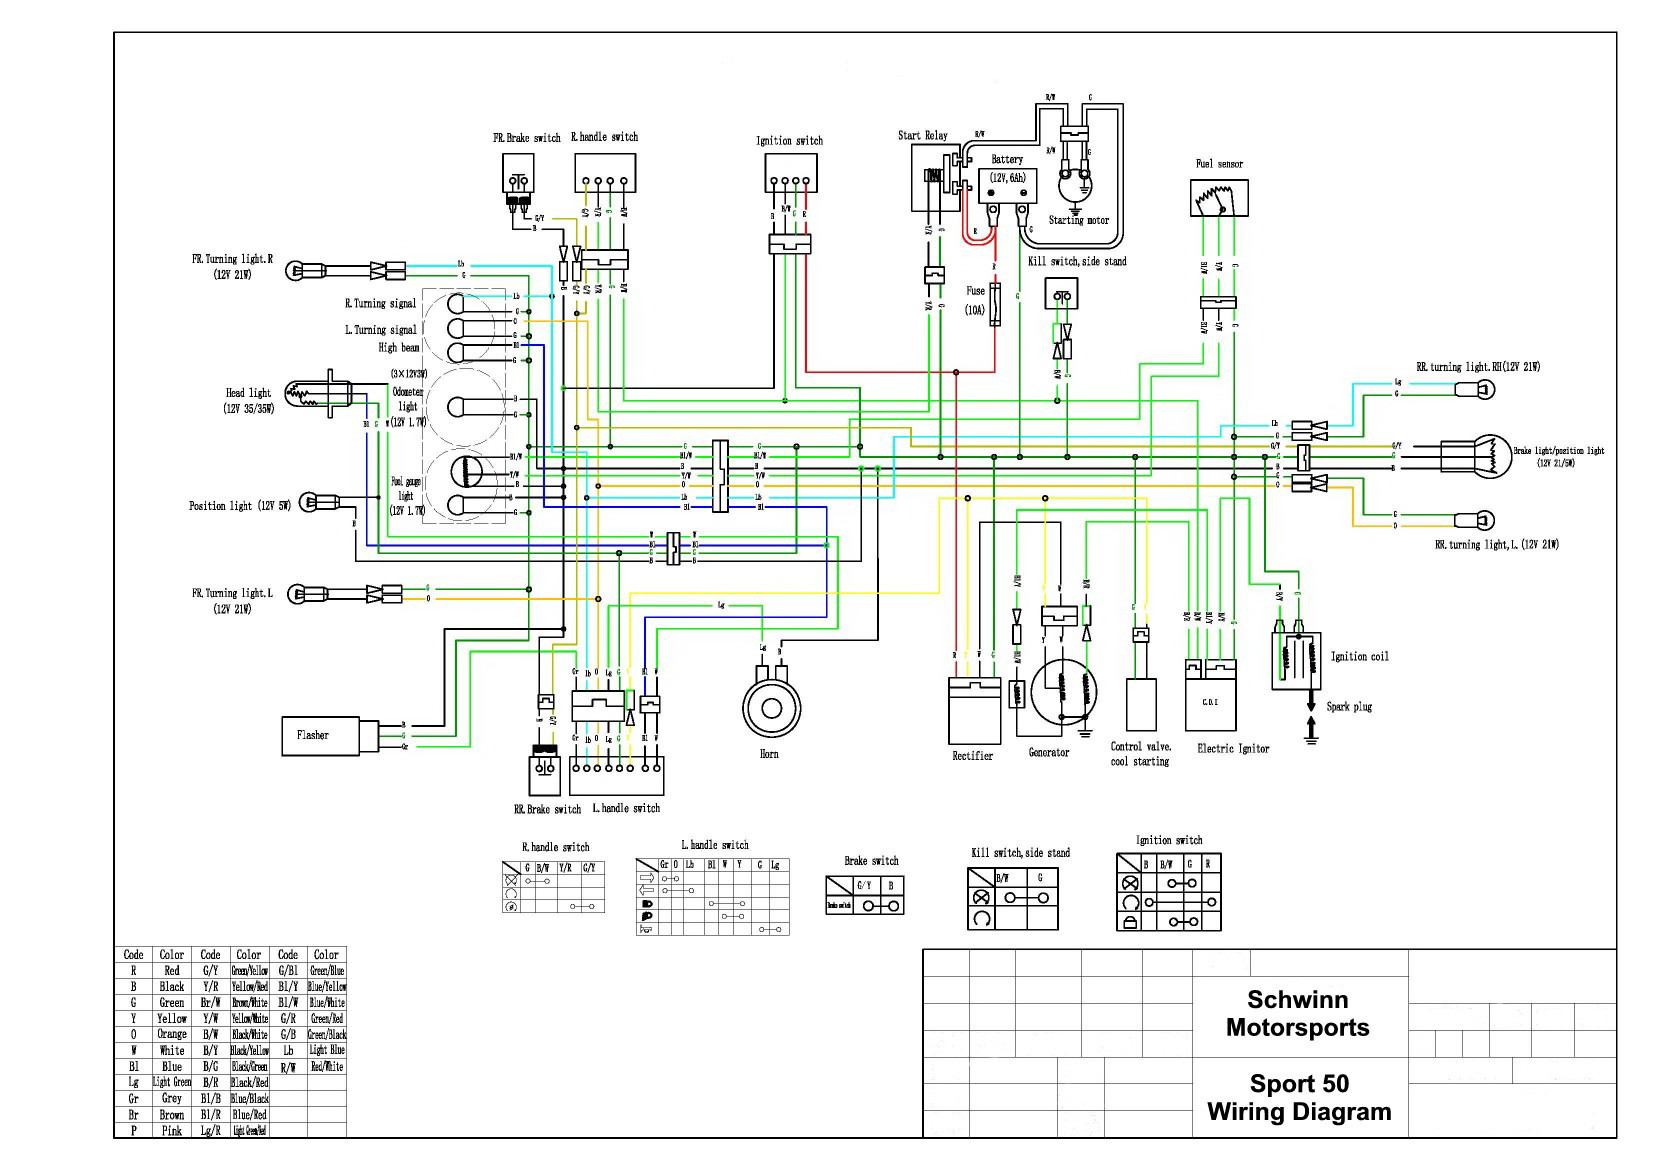 24 Volt Wiring Diagram For Scooter Wiring Diagram Data Today